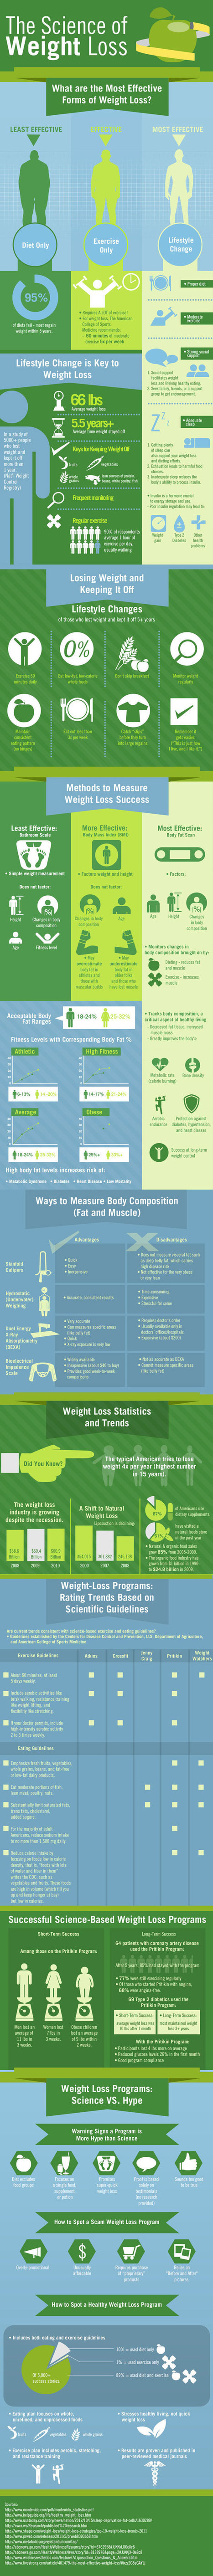 The Science of Weight Loss Infographic | Wicked Wellness | Scoop.it